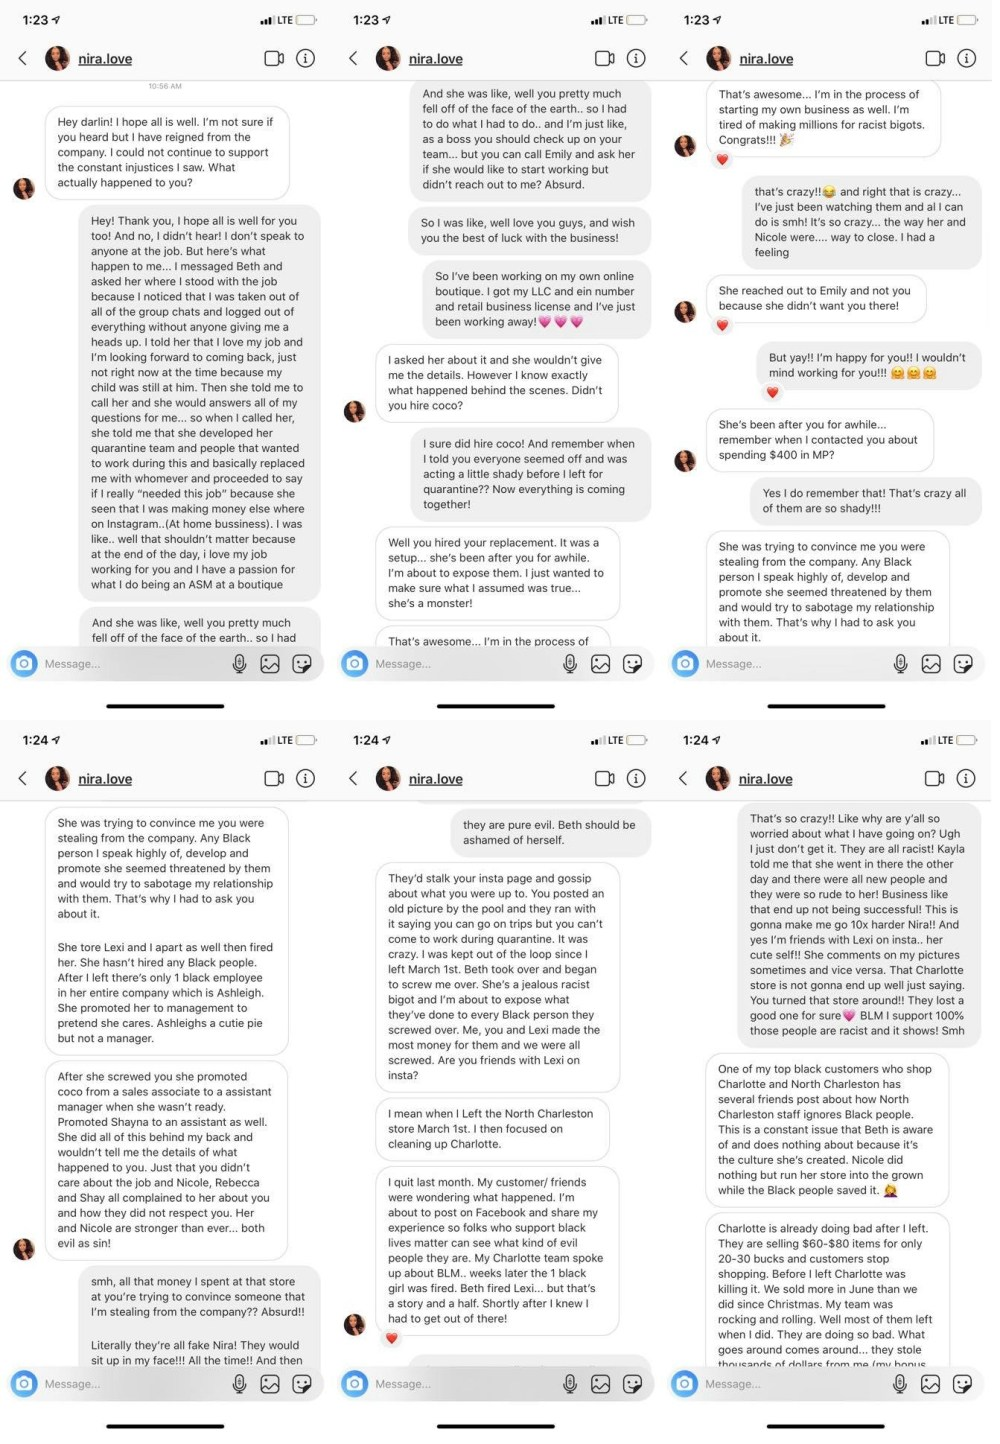 Lillian Wright took to Facebook, yesterday, to tell people if she sent them an invite to like Apricot Lane Charleston to unlike the page. In her status, Lillian Wright went onto say that she was fired, for no reason, from the company, talked about, and stalked on her Instagram. Her former district manager, also black, found her on Instagram, sharing via DMs that she was set up, from the beginning, despite being an assistant manager for the store, she was accused of stealing from the company, among other lies of wrongdoing.